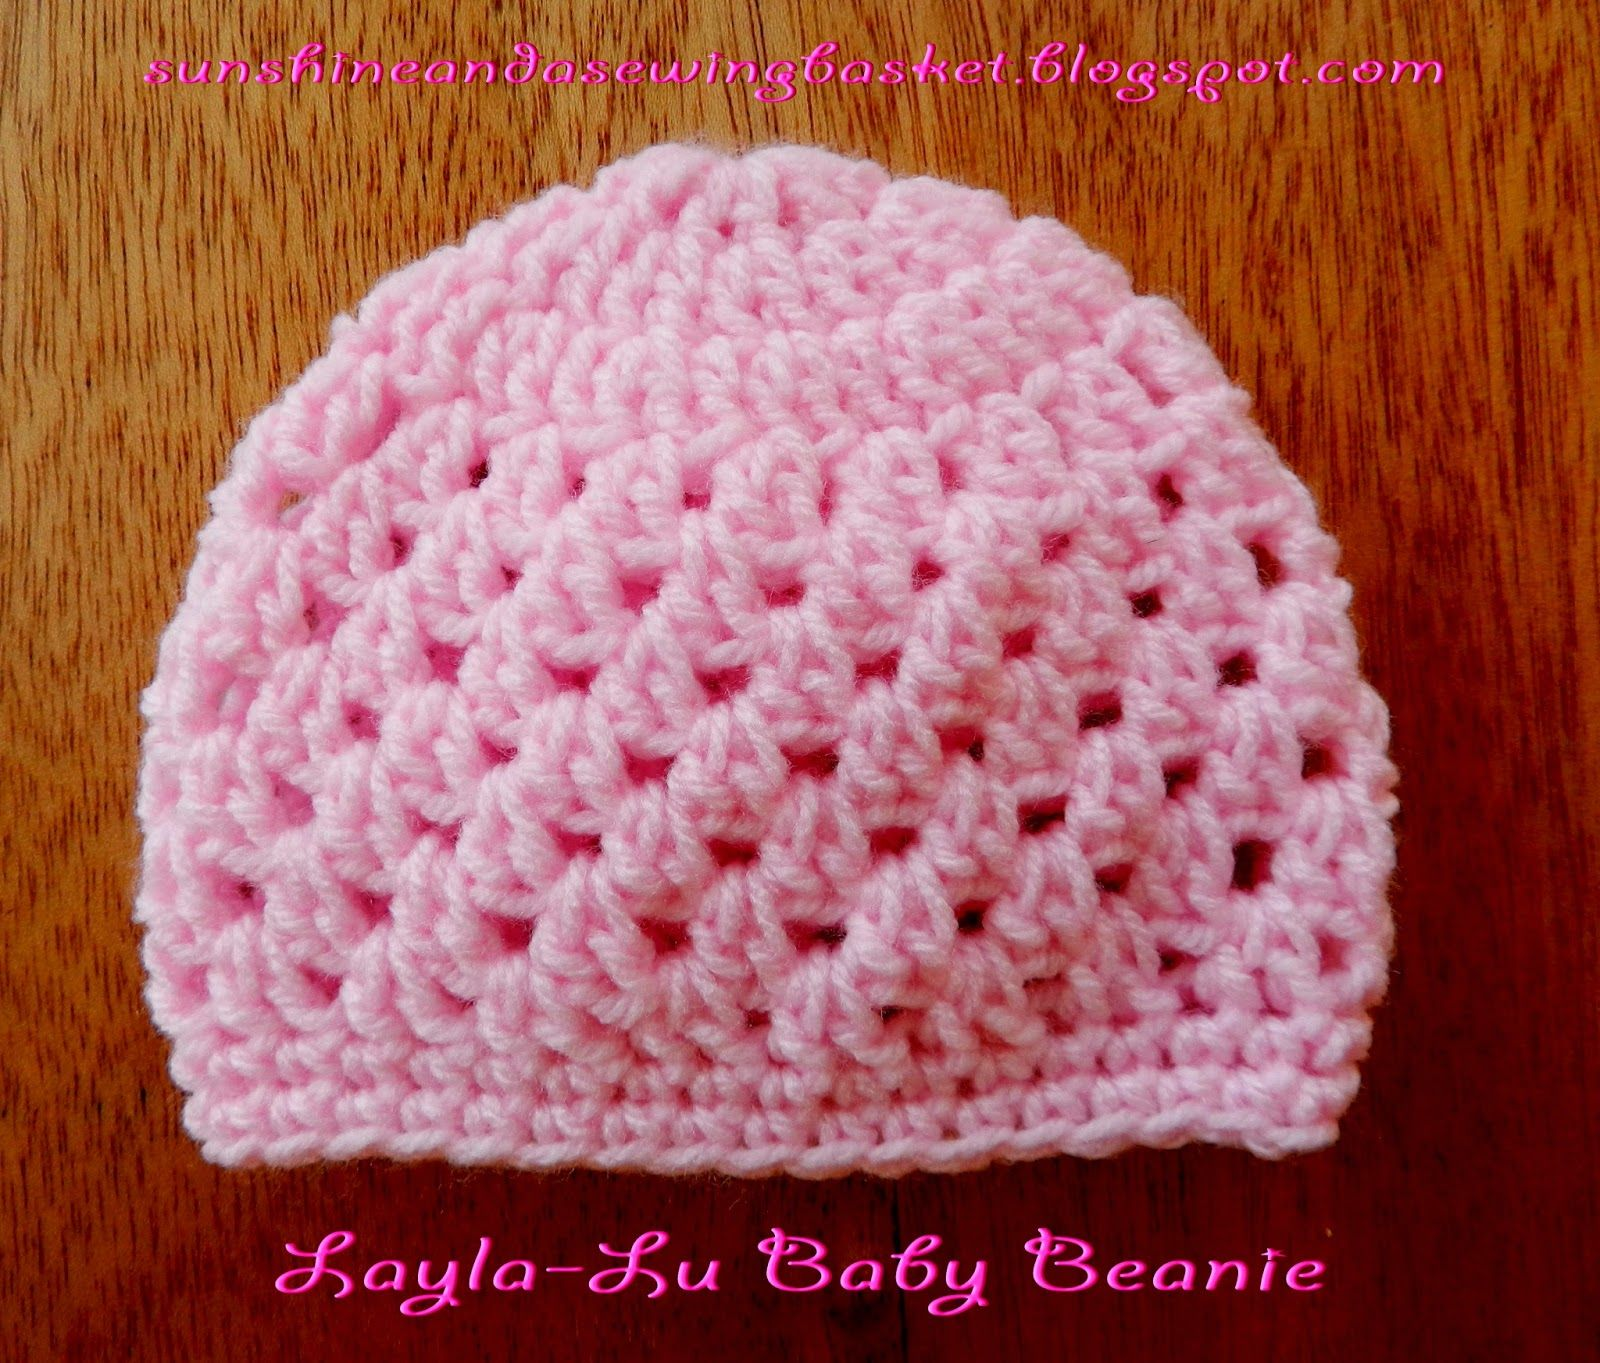 Bany beanie tutorial with several sizes very good for donation bany beanie tutorial with several sizes very good for donation projects crochet for the hospital bankloansurffo Image collections